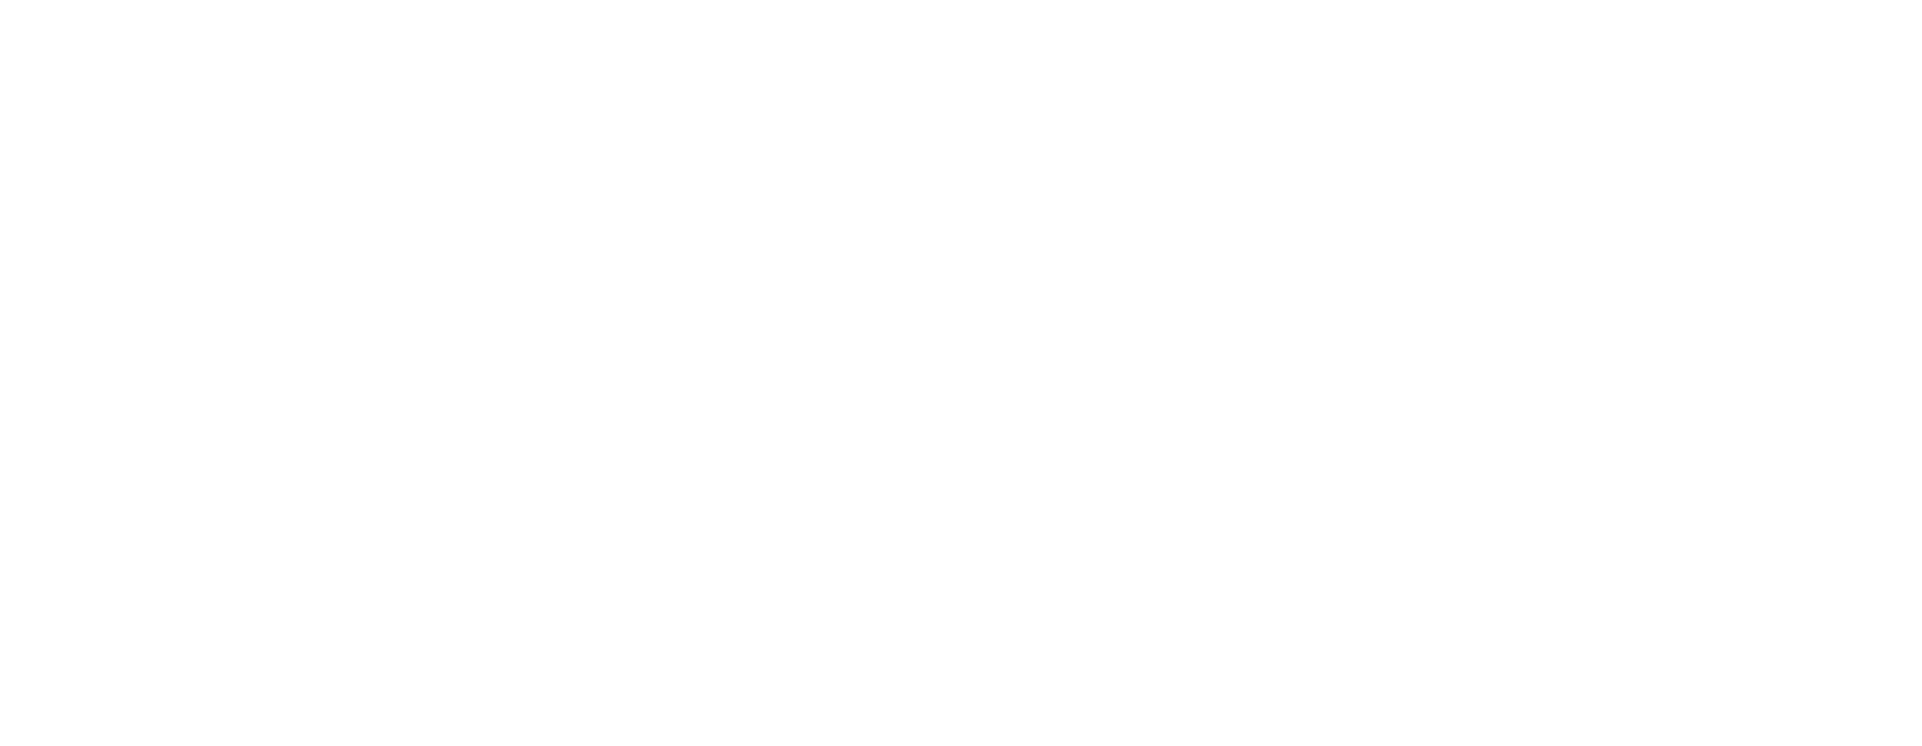 22 West Live Sessions Logo